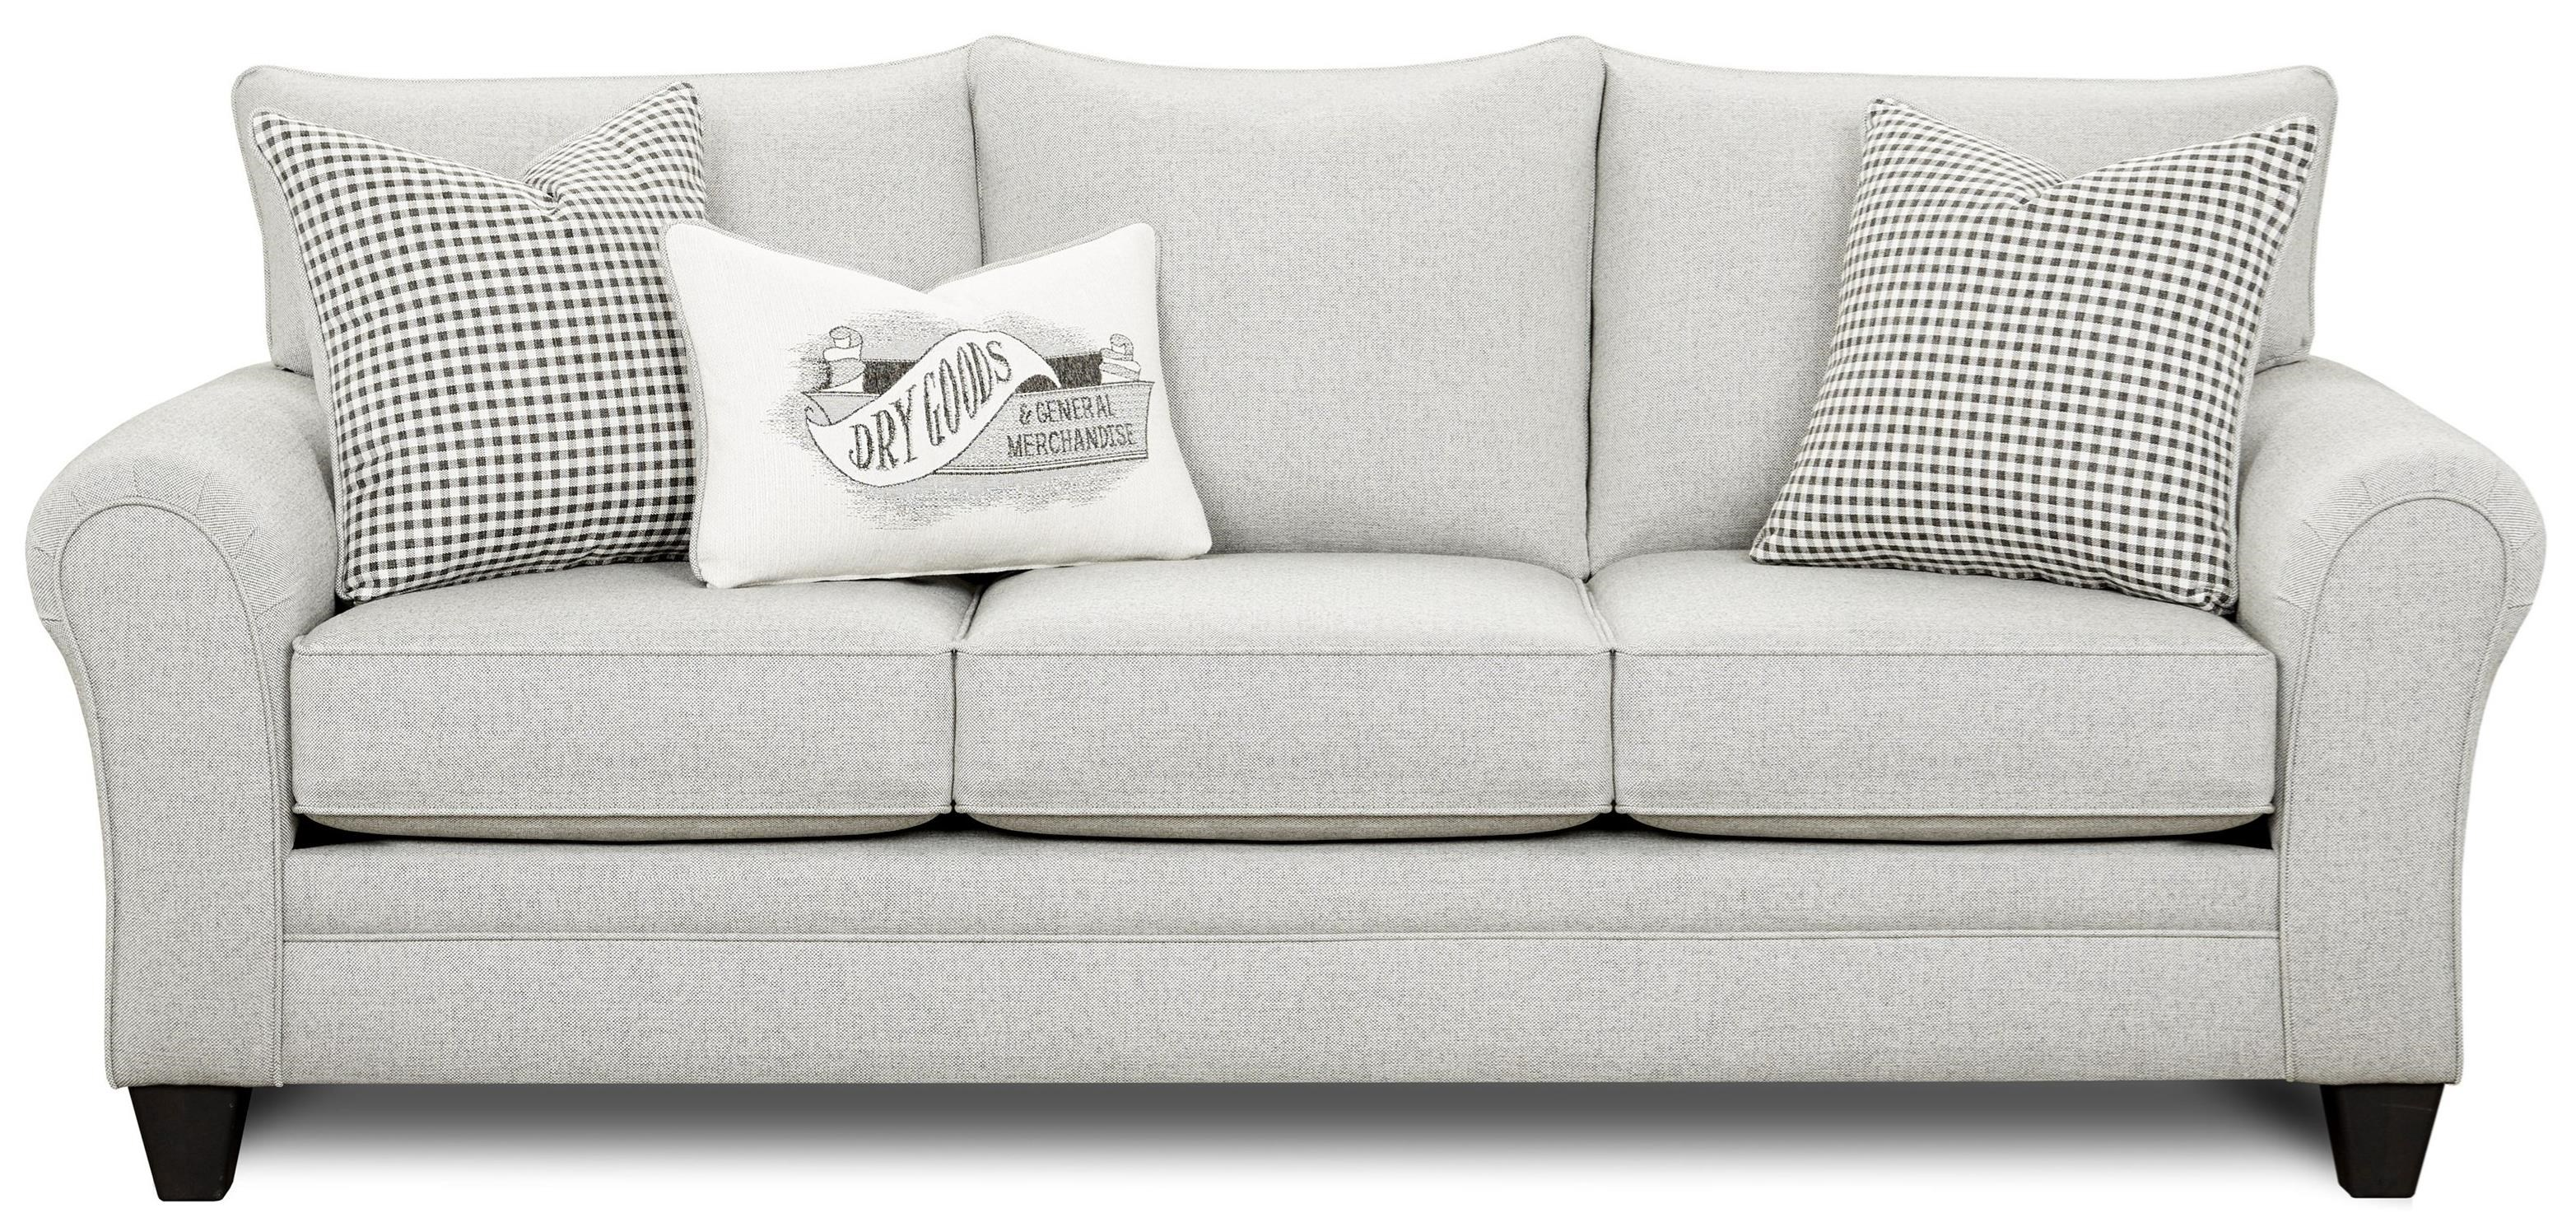 44-00 Sofa by Powell's V.I.P. at Powell's Furniture and Mattress